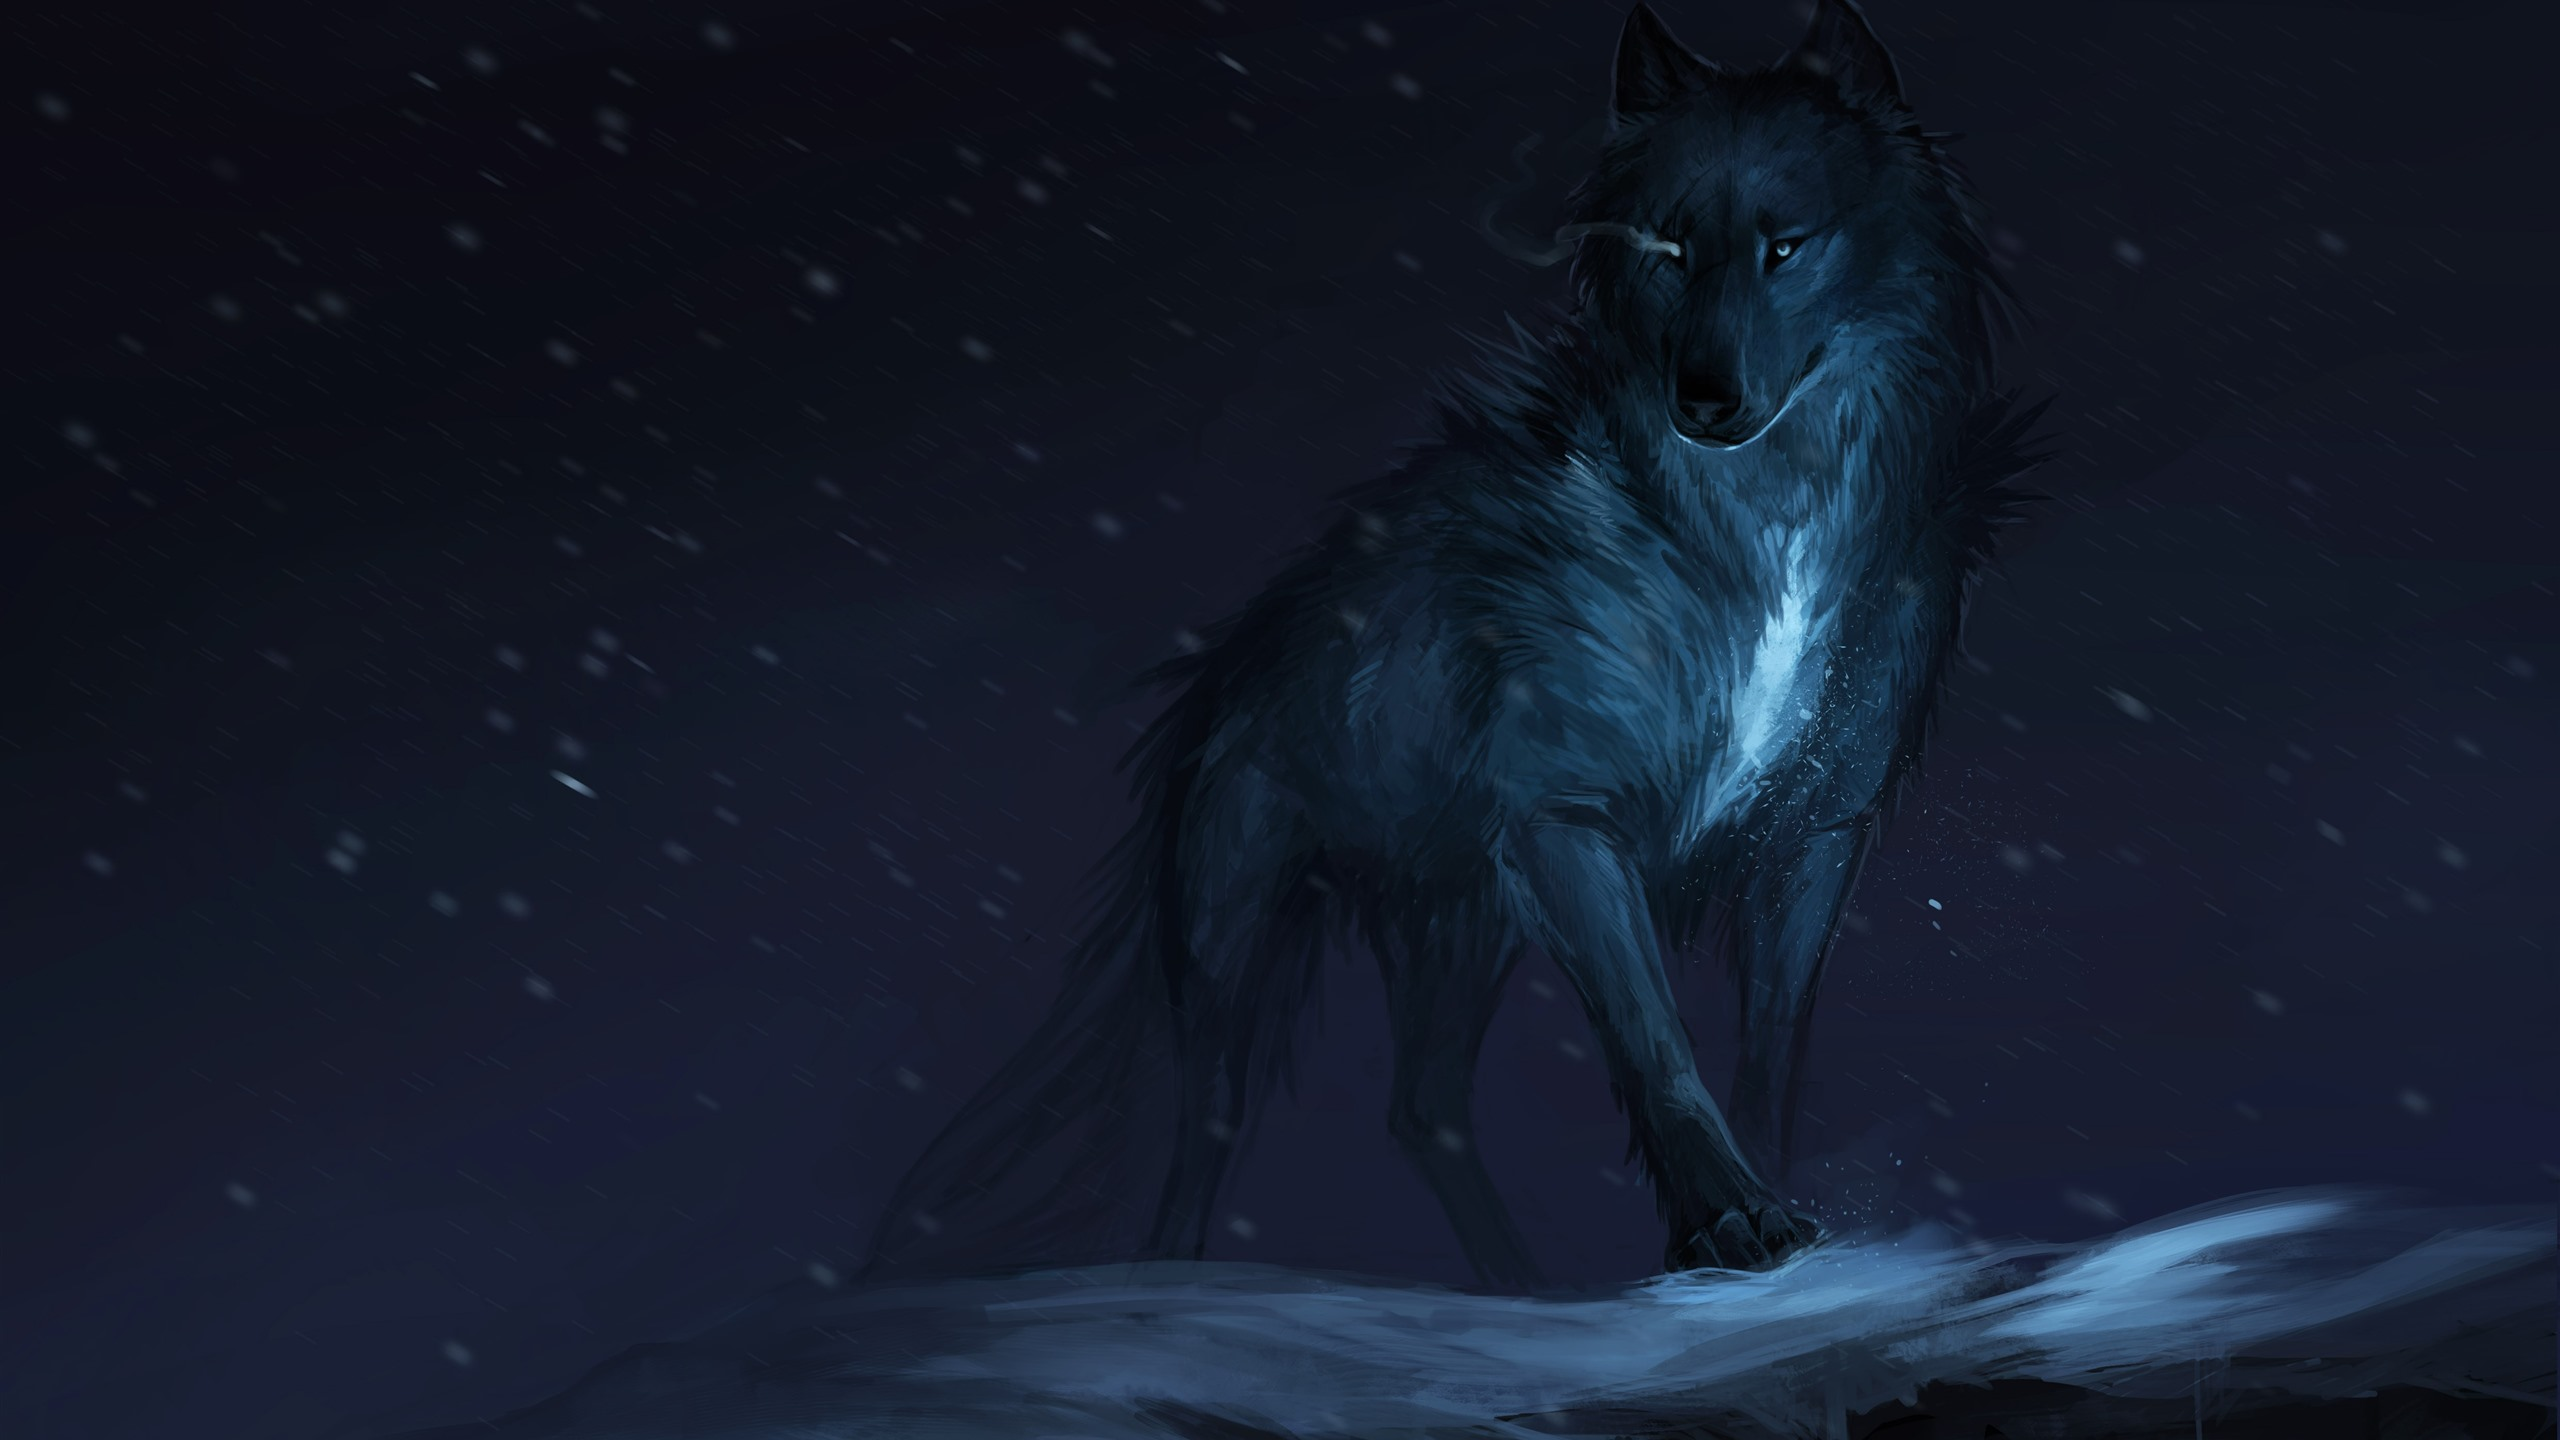 Black Wolf Night Art Picture 1242x2688 Iphone 11 Pro Xs Max Wallpaper Background Picture Image